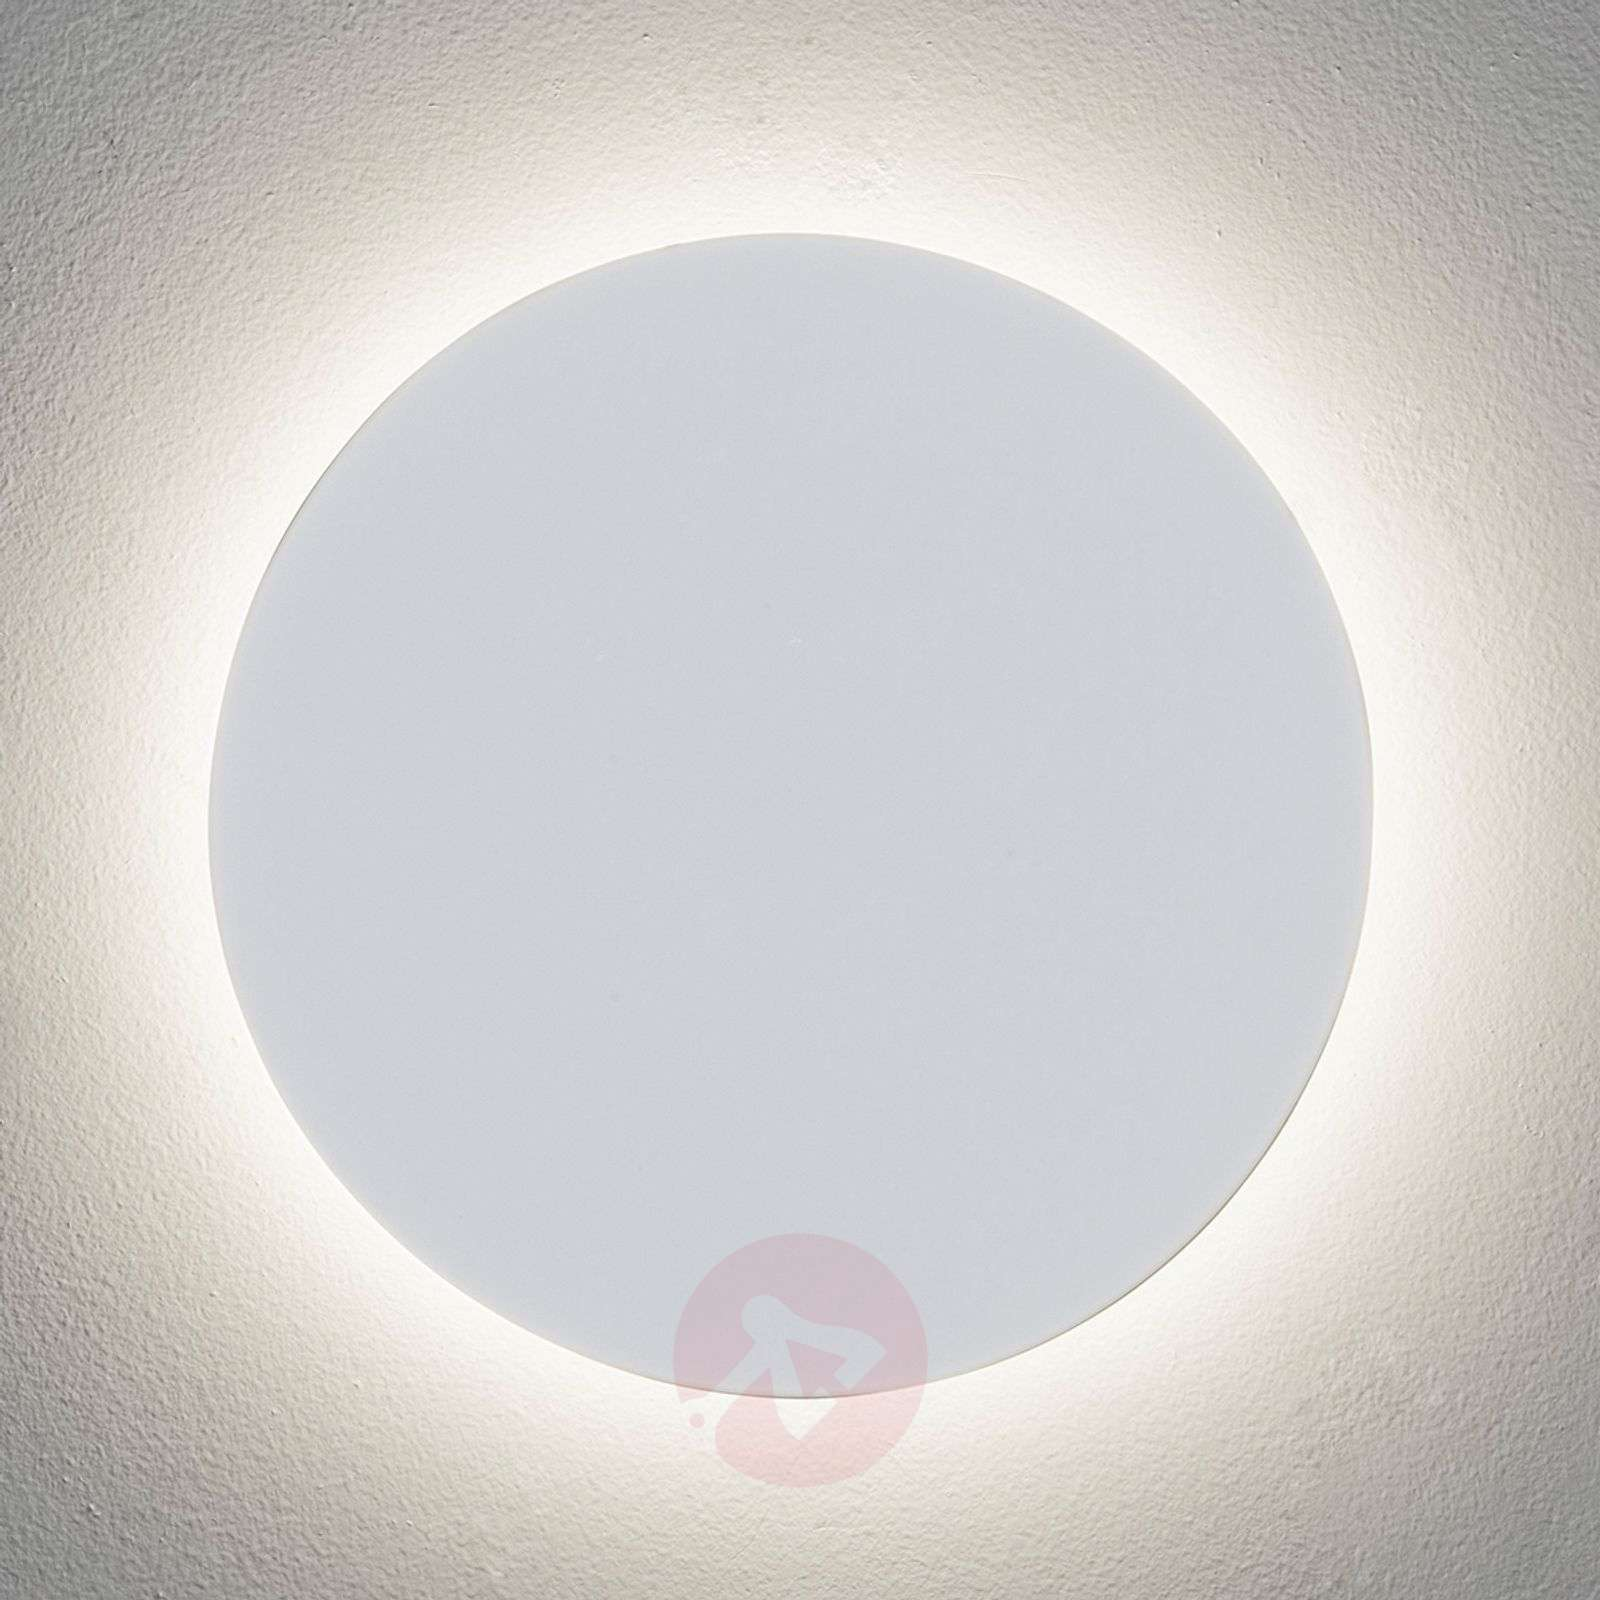 Eclipse Round LED wall light with fantastic effect-1020525-03